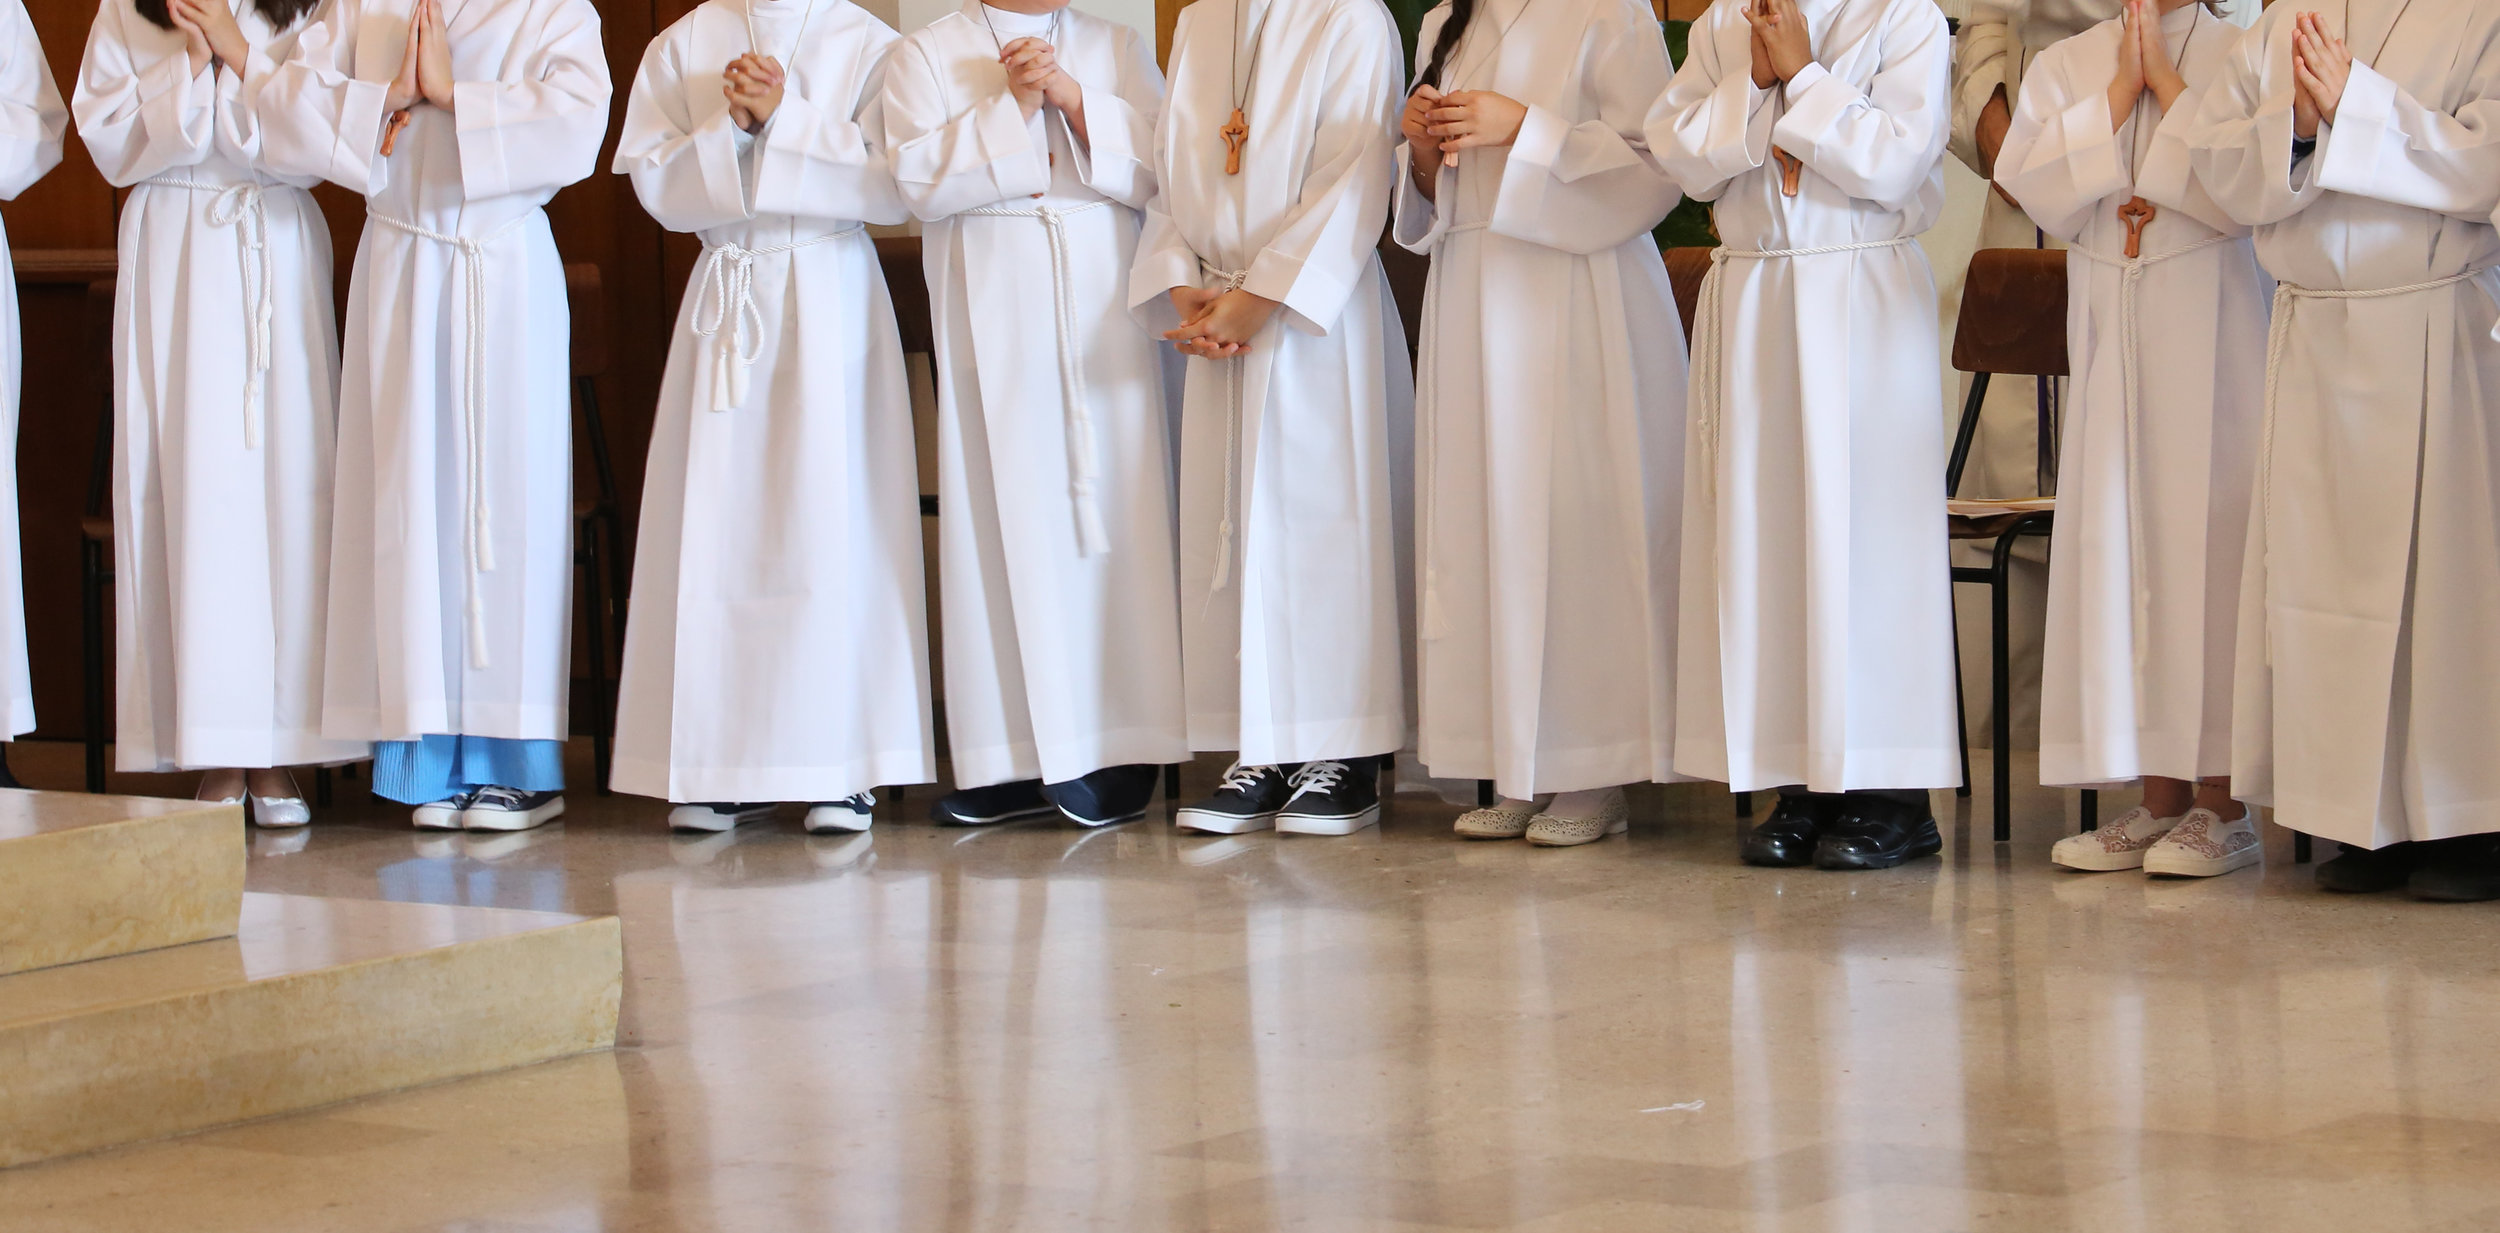 Altar Servers - Altar Servers assist the priest during the celebration of the Mass. There are a few training sessions each year and all youth in 4th grade or higher are strongly encouraged to join this ministry.Contact: Angela Mitchell, 616-361-5627